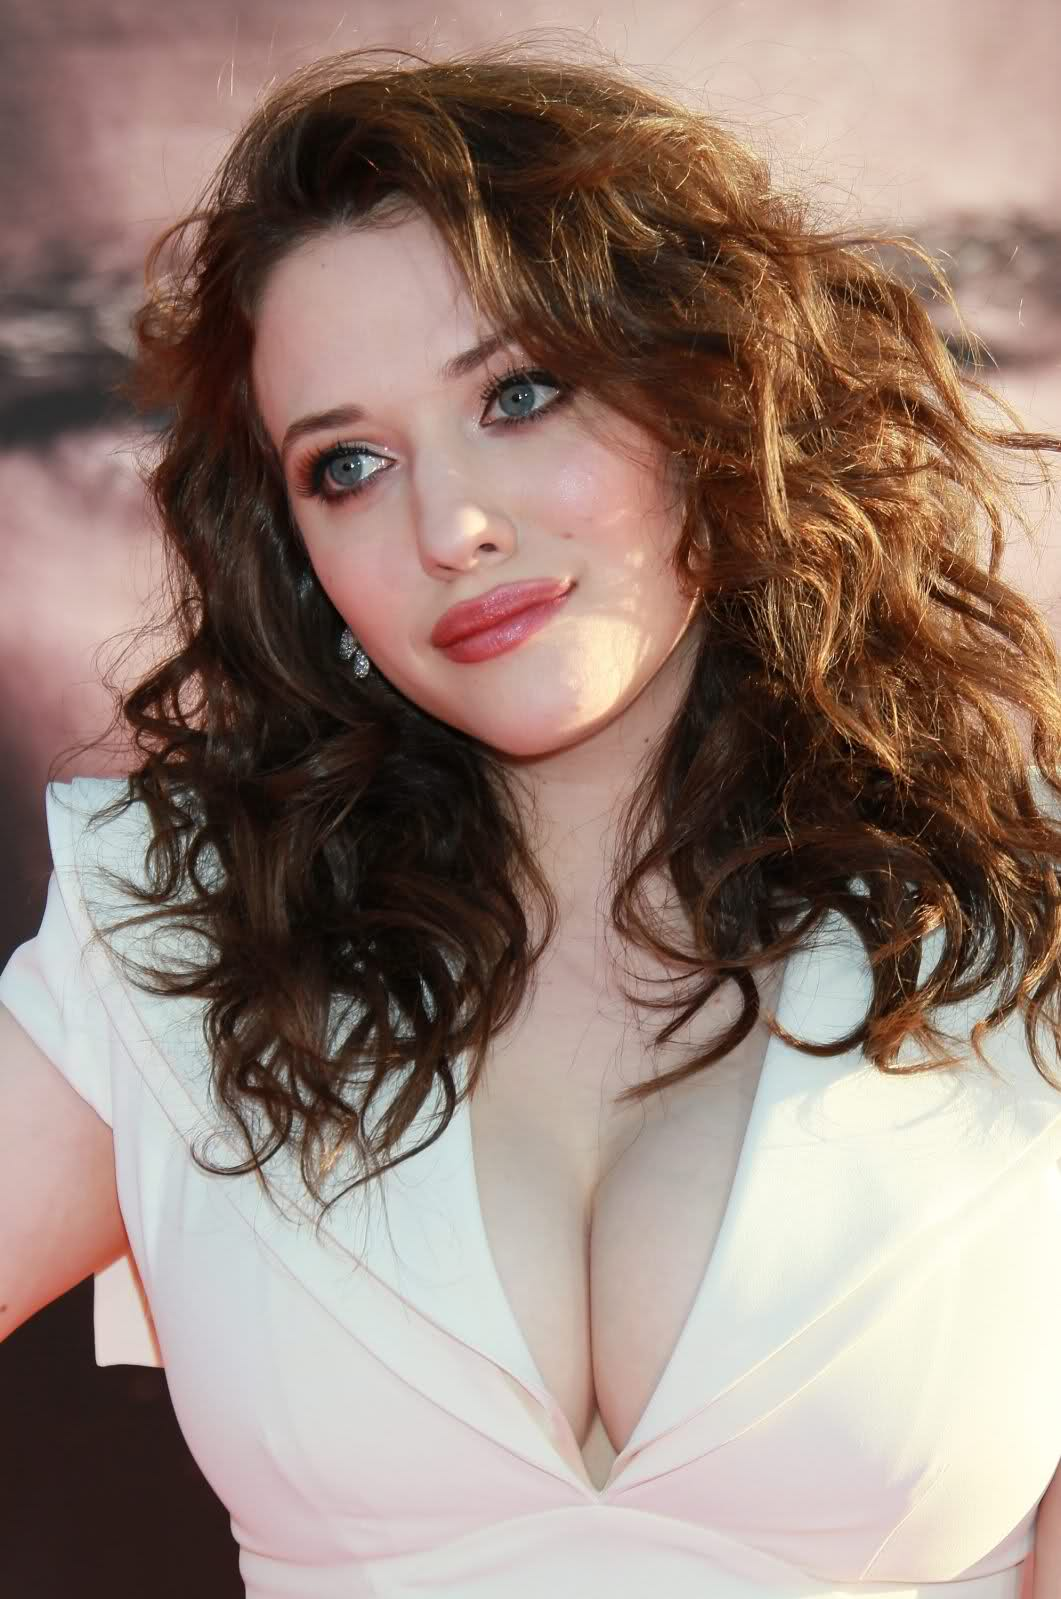 Words... Hot kat dennings cleavage would